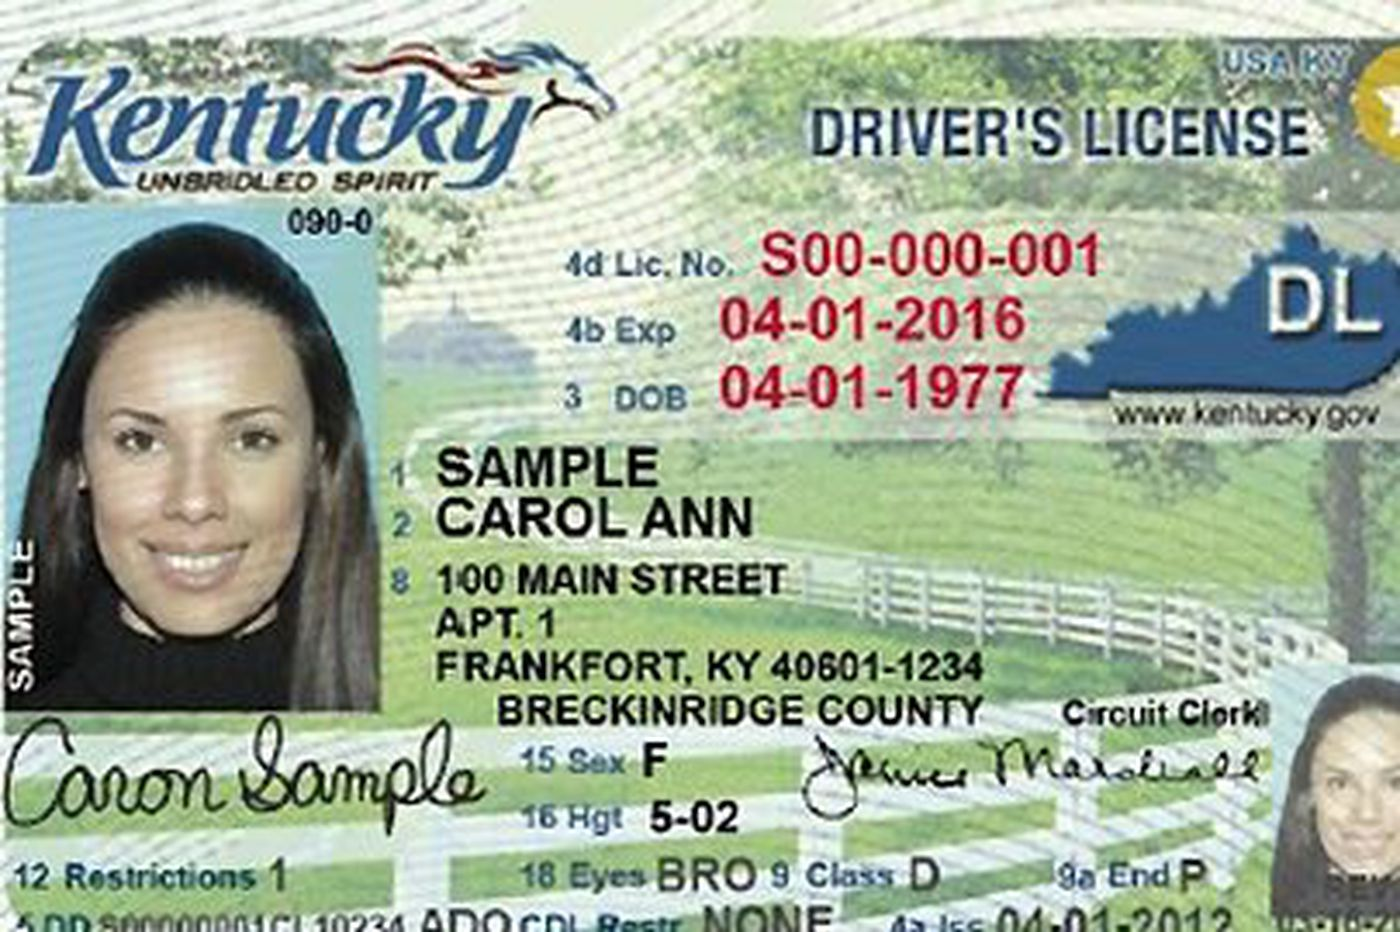 drivers license/photo id information center lancaster pa